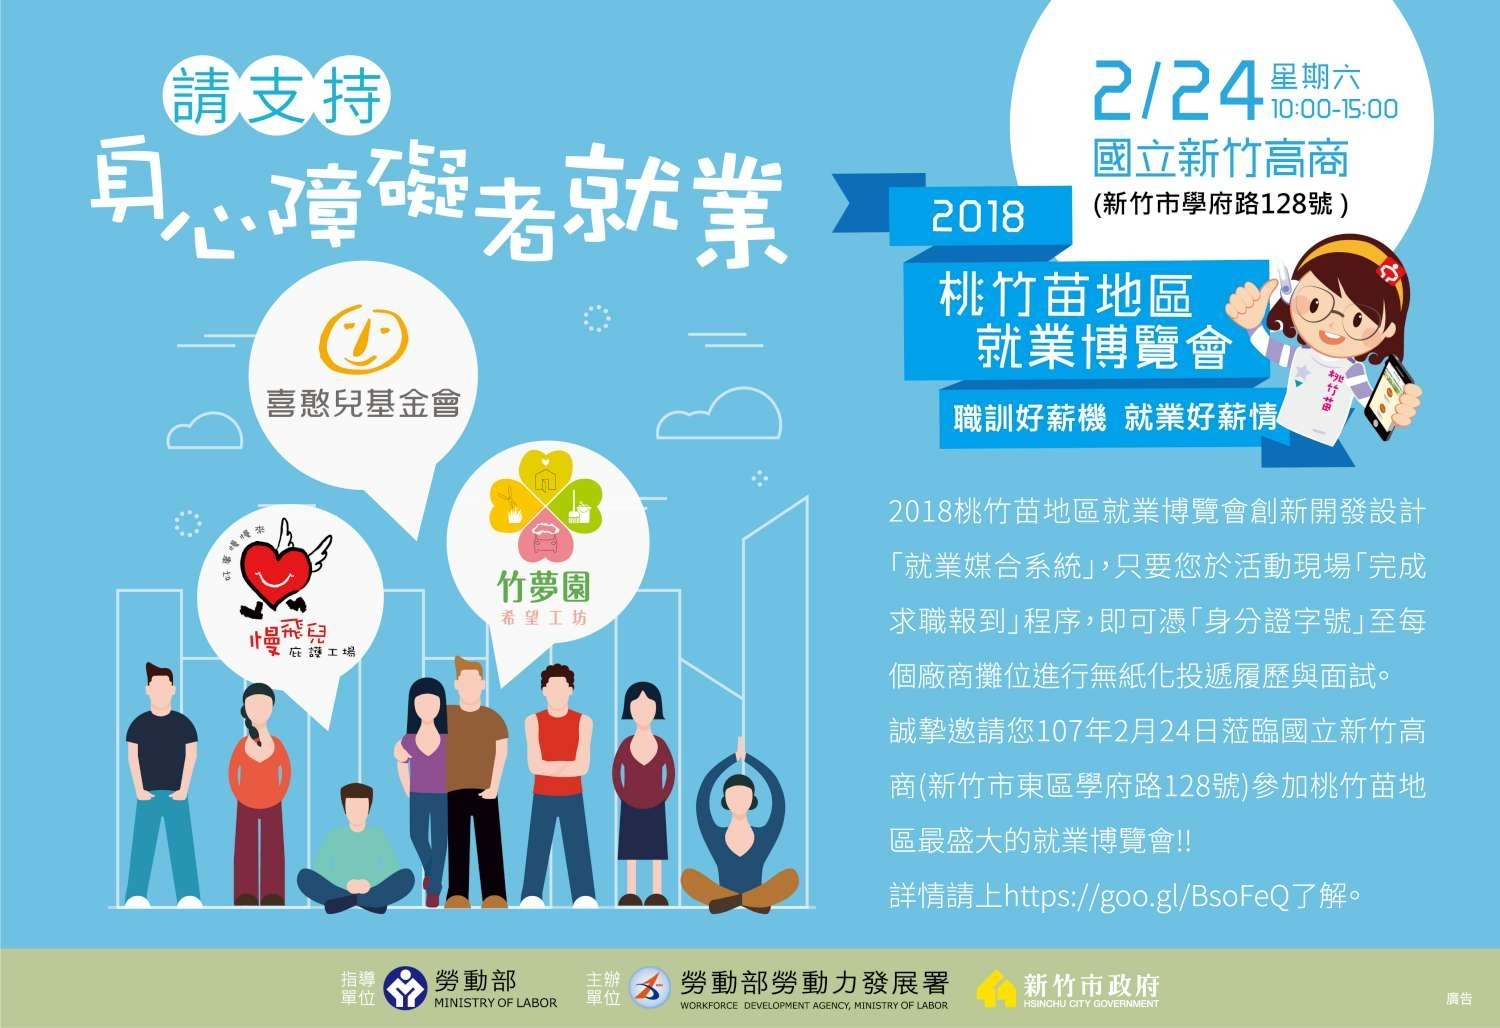 Virtual and Physical Matching Service; the First Large Career Fair in Hsinchu City of the Year